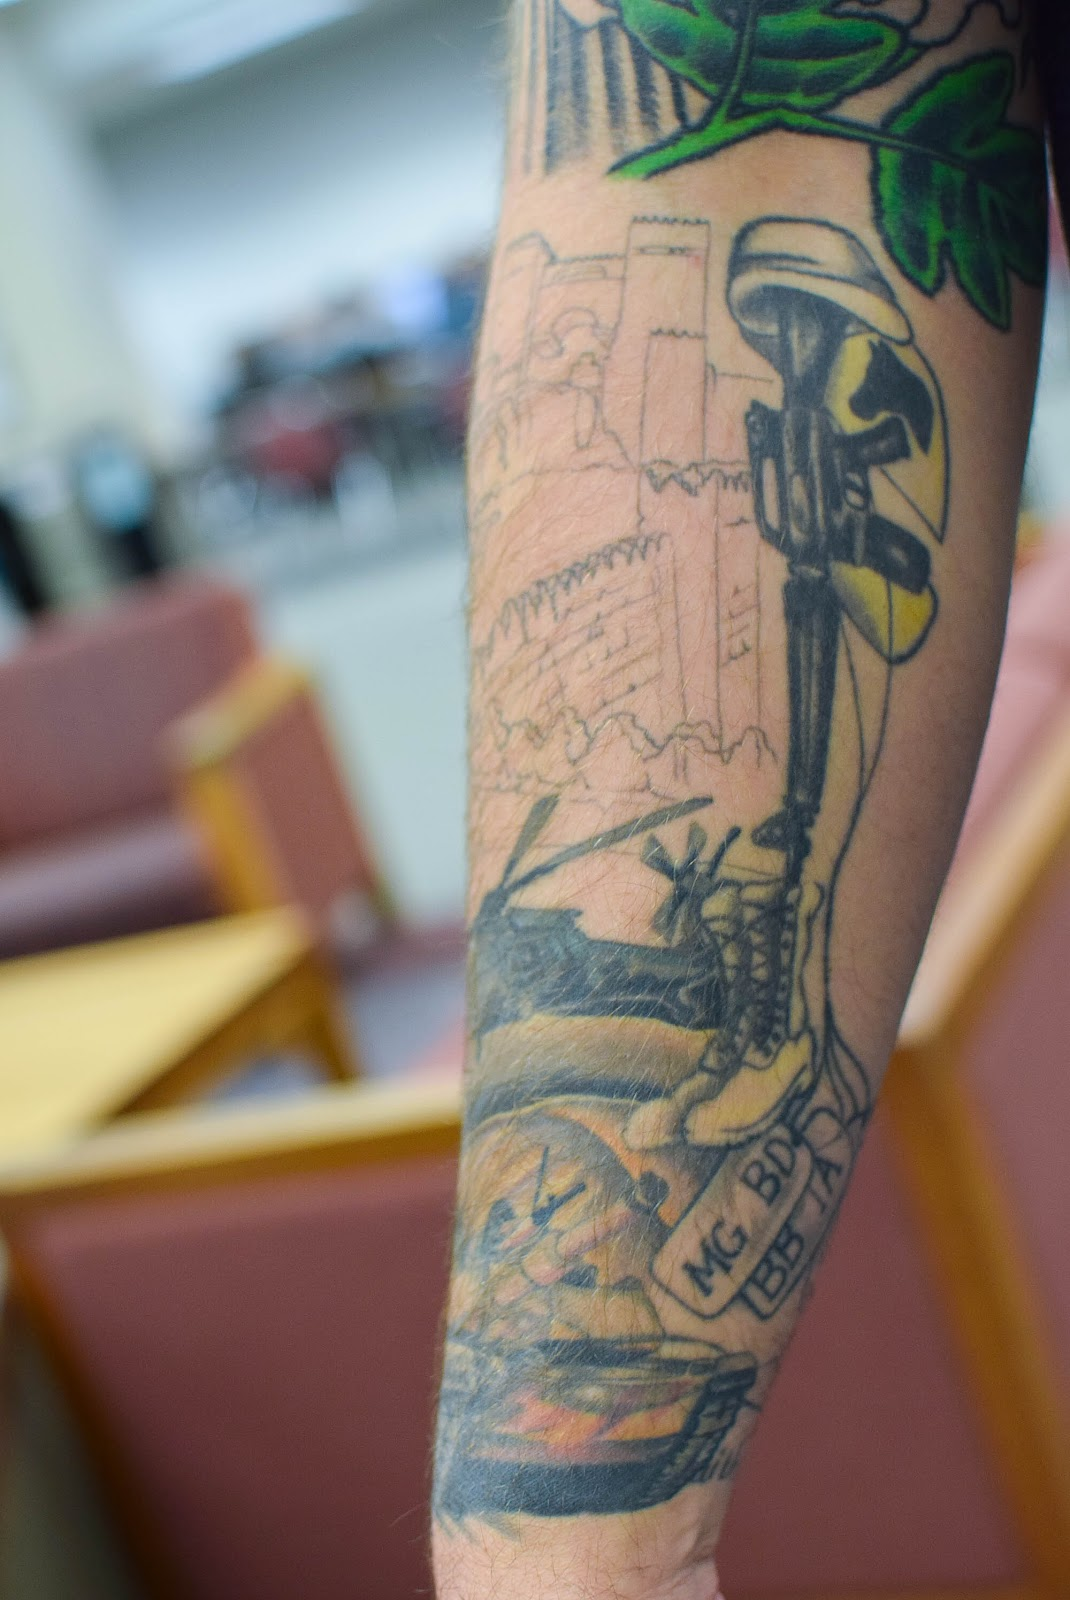 The Tattoos of Sacramento State: Issue No. 4 | Her Campus